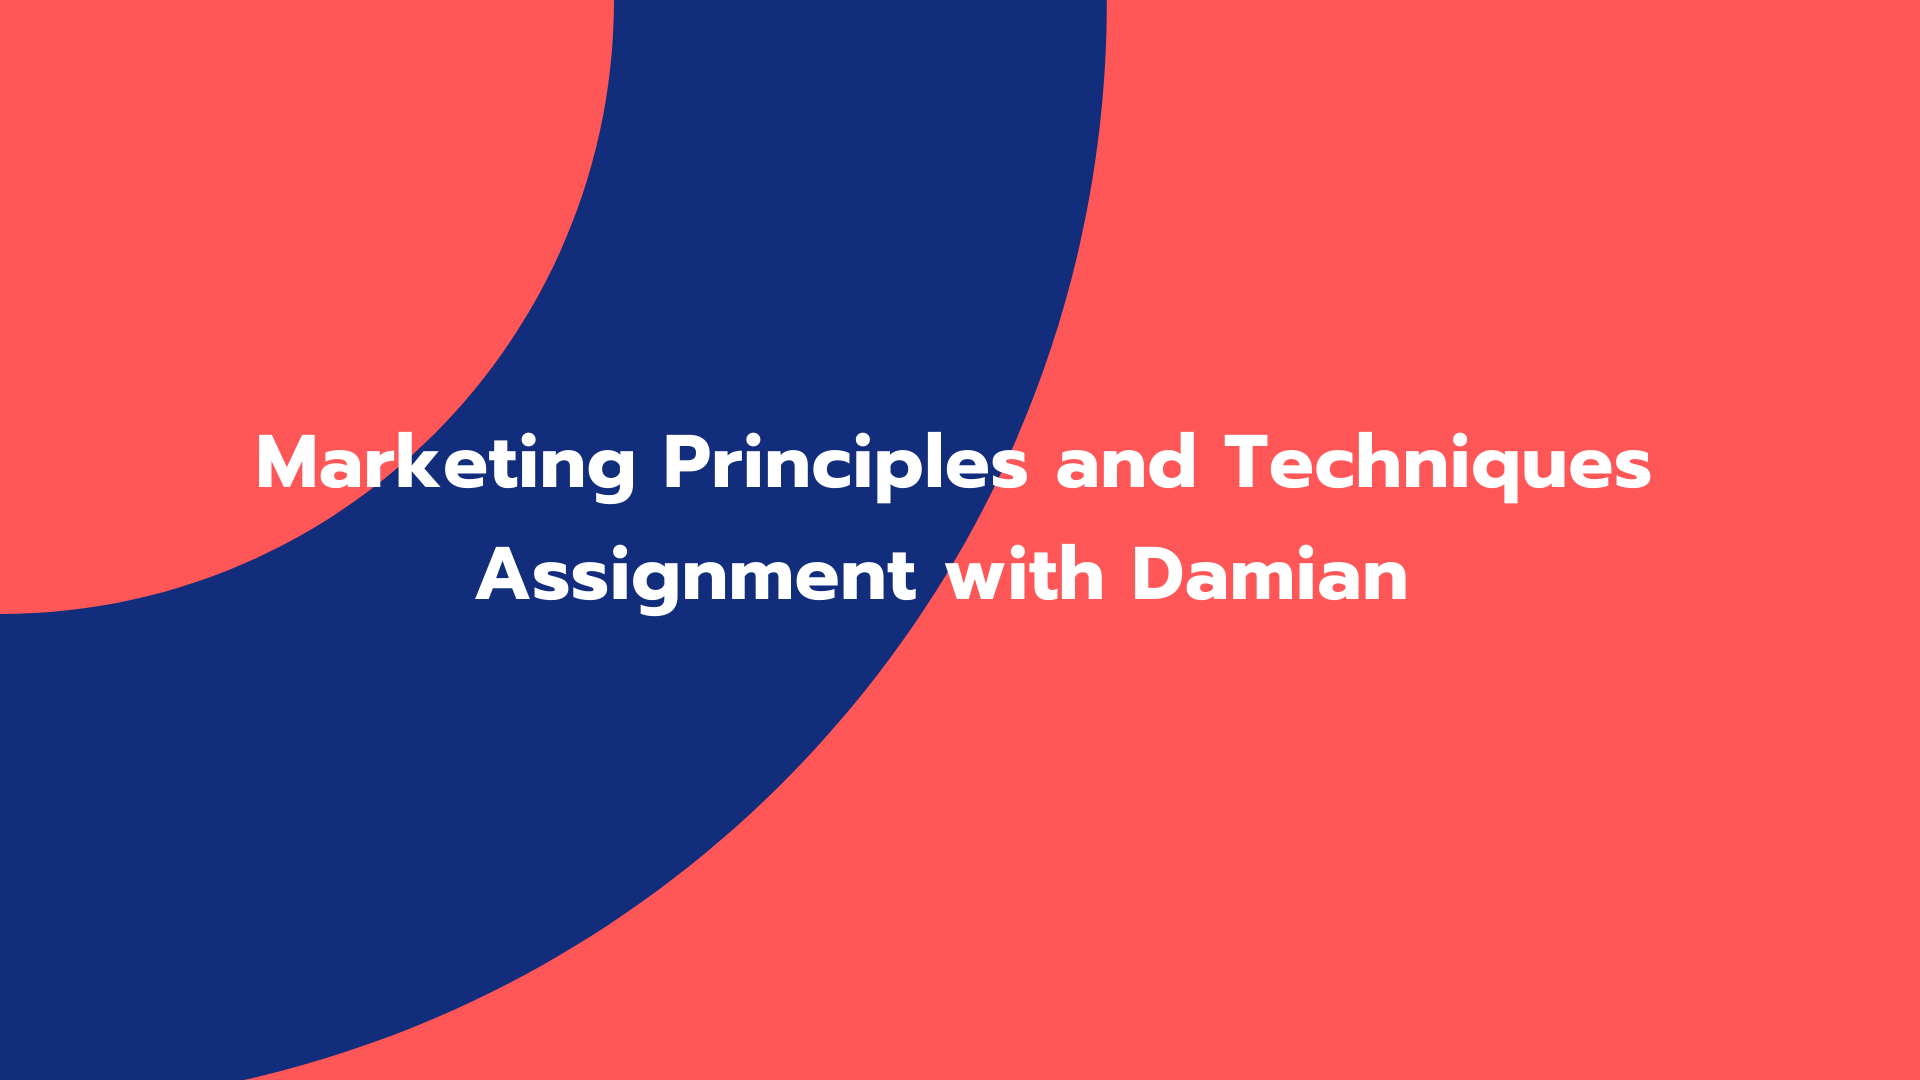 Marketing Principles and Techniques Assignment with Damian